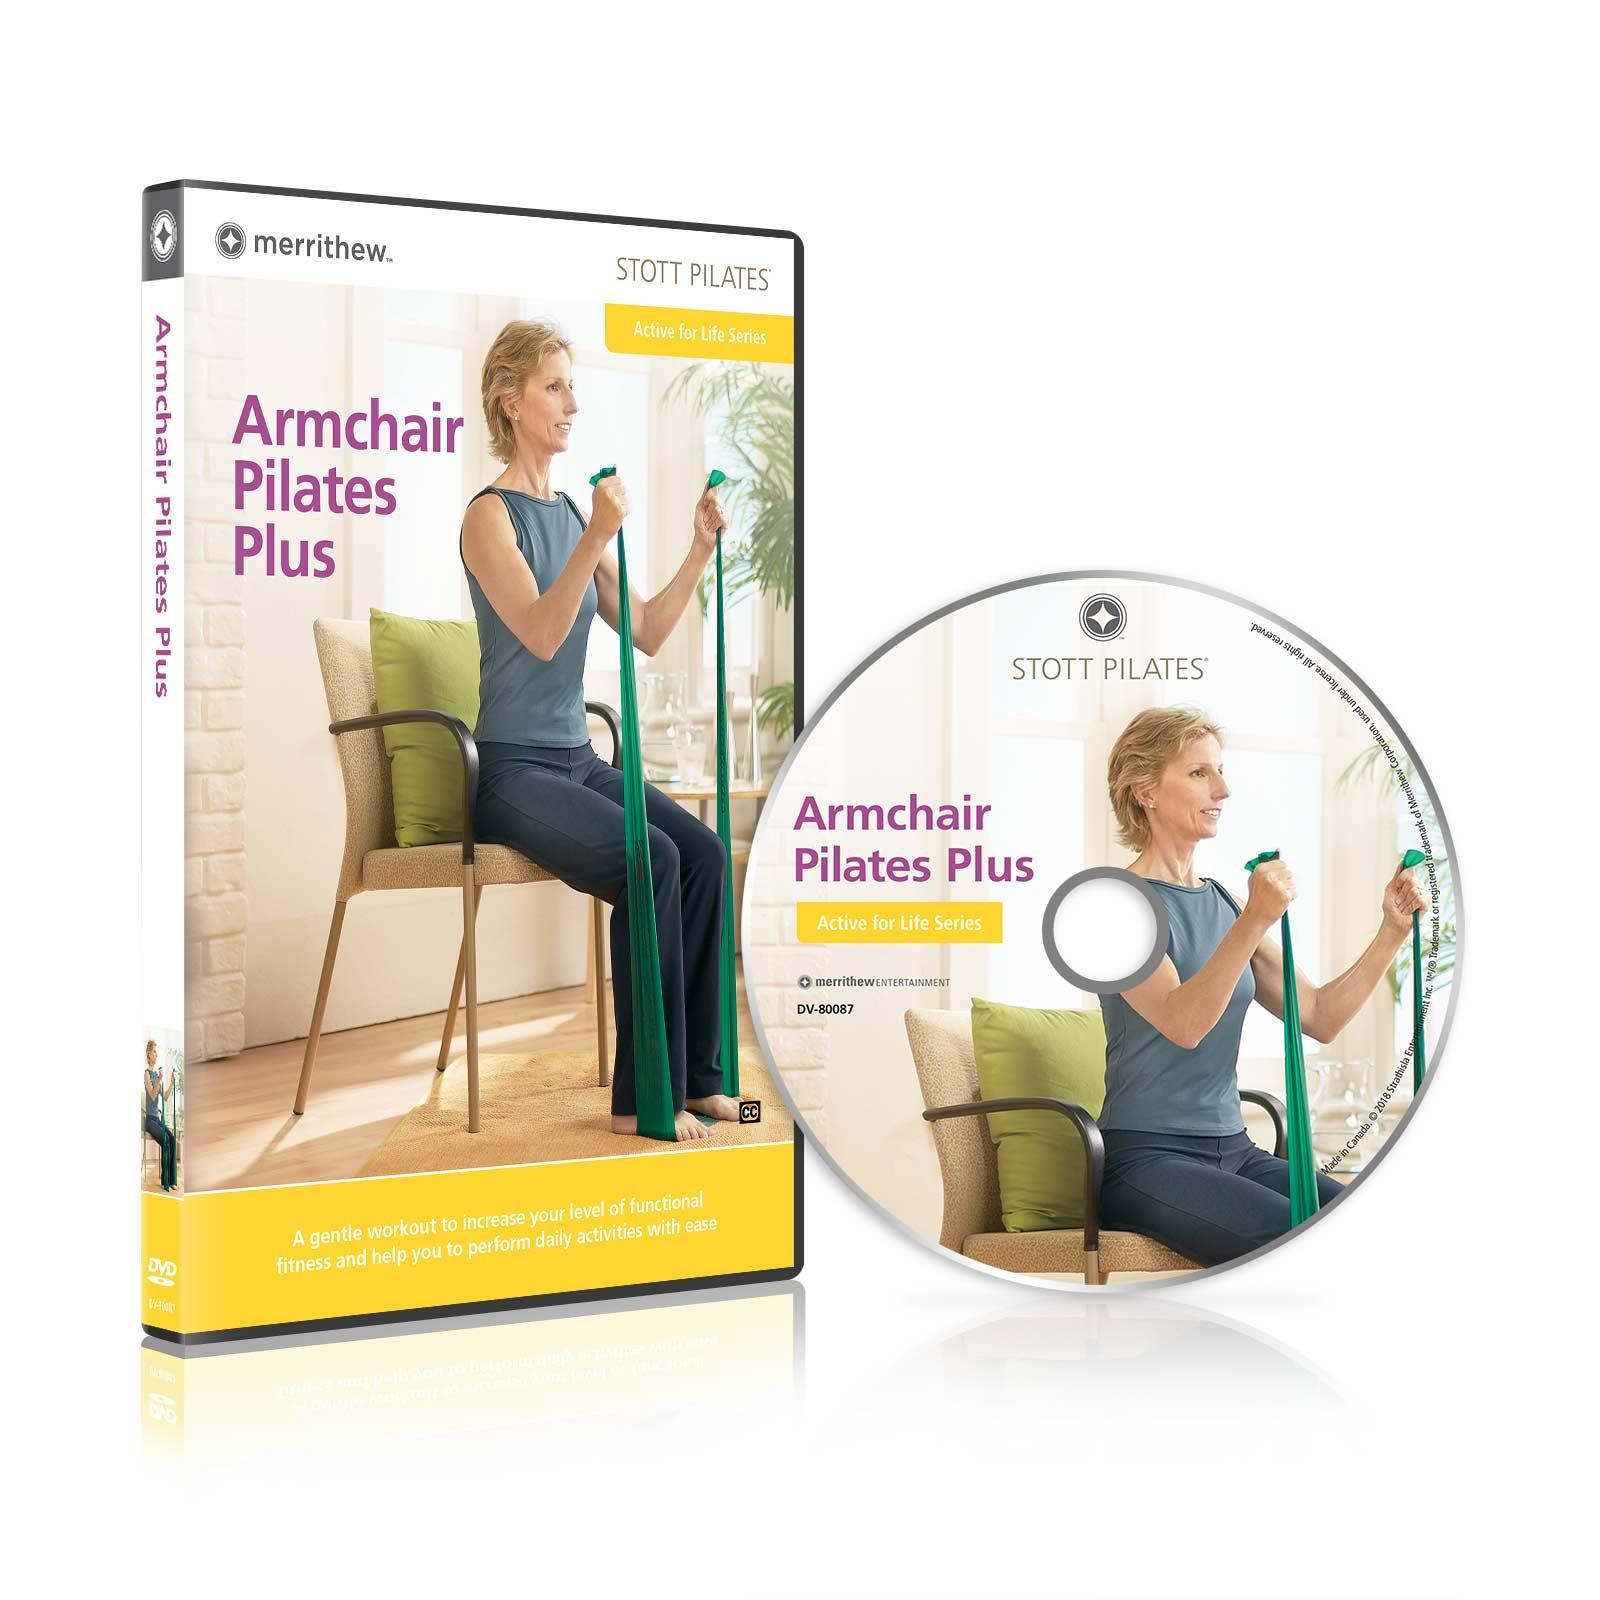 Armchair Pilates 28 Images Related Product Stott